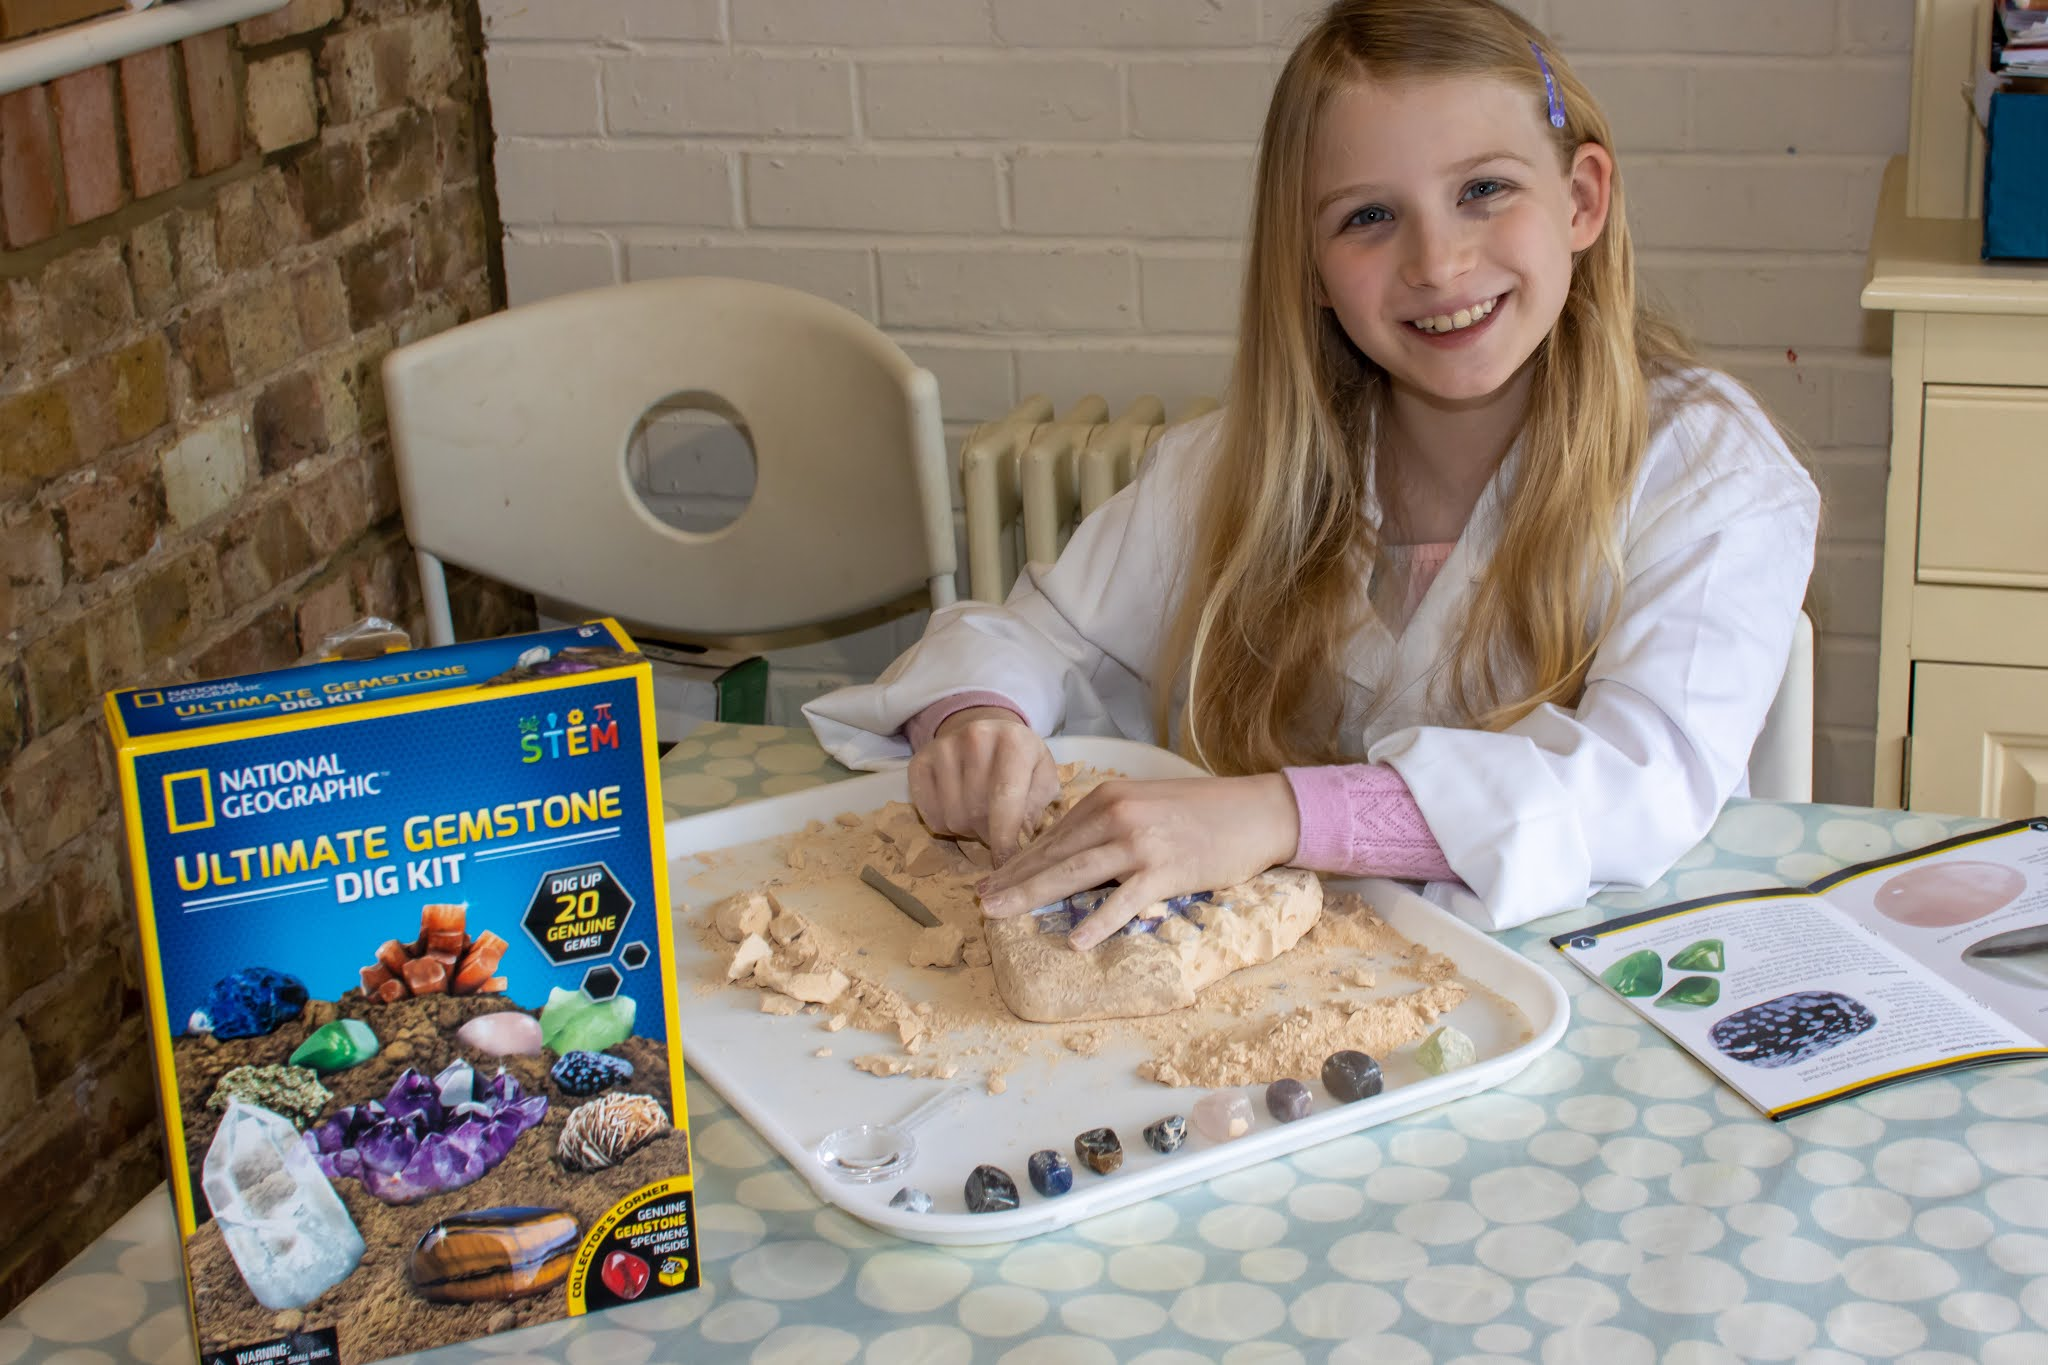 A smiling 9 year old girl in a lab coat digging gemstones out of a block from the Ultimate Gemstone Dig Kit she is reviewing